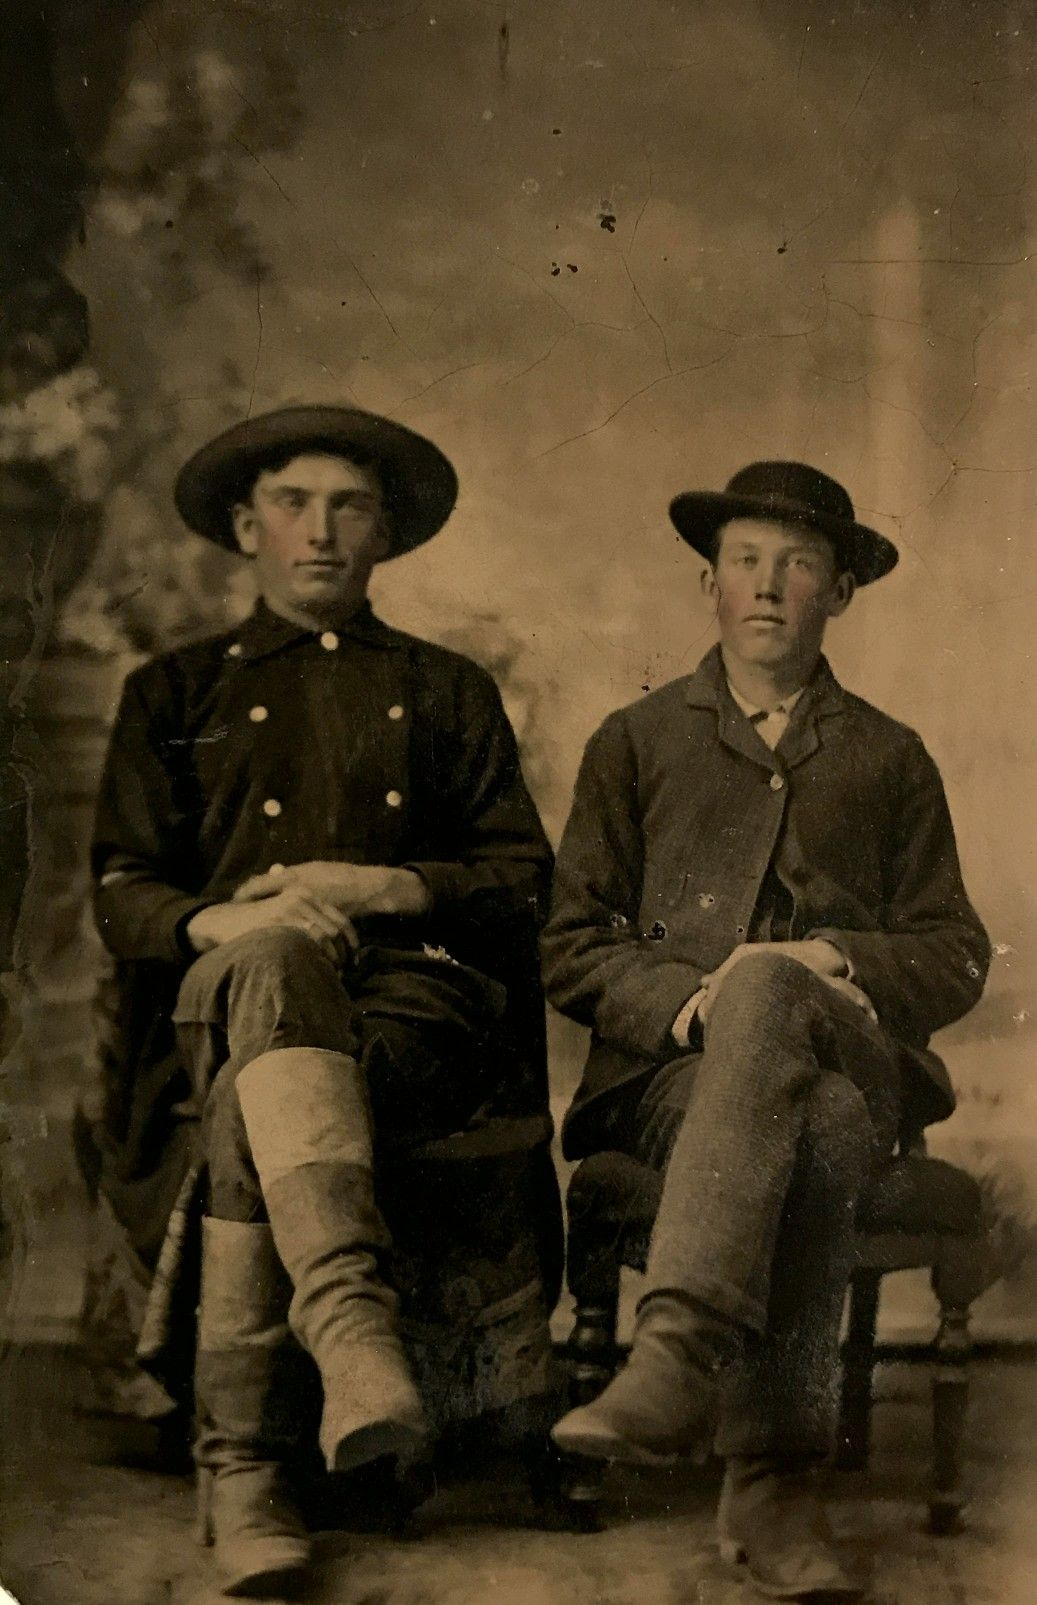 Frank James On The Left Brother Jesse James Right From A 1 6 Plate Tintype Original Image From The Collection Of Jesse James Old West Outlaws Famous Outlaws